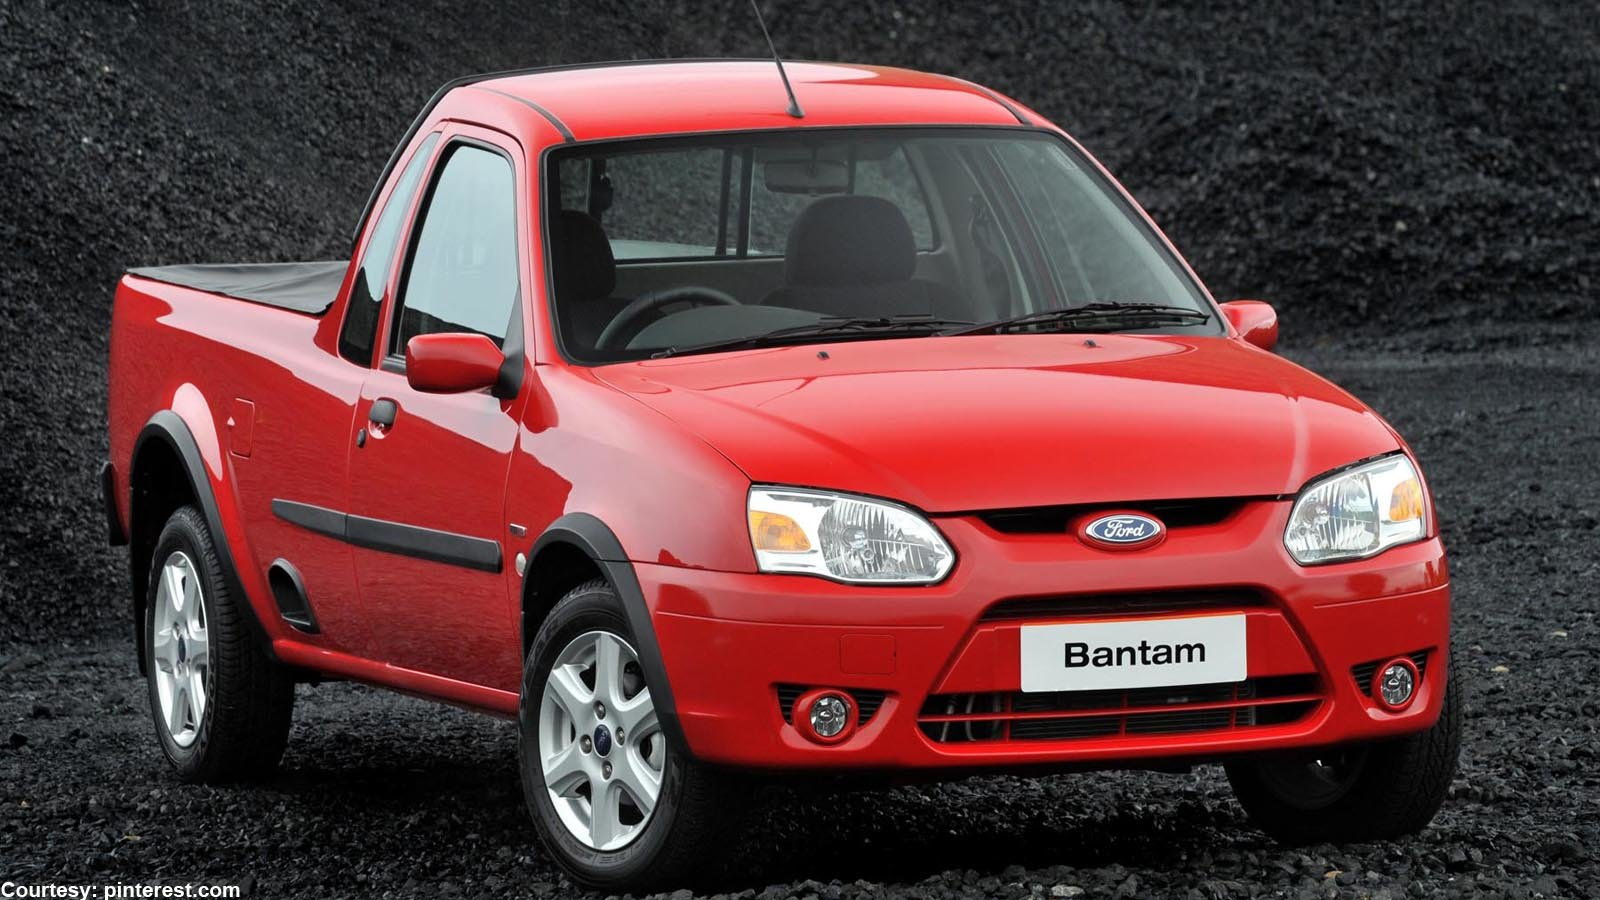 5 Fords We Can't Get in the States